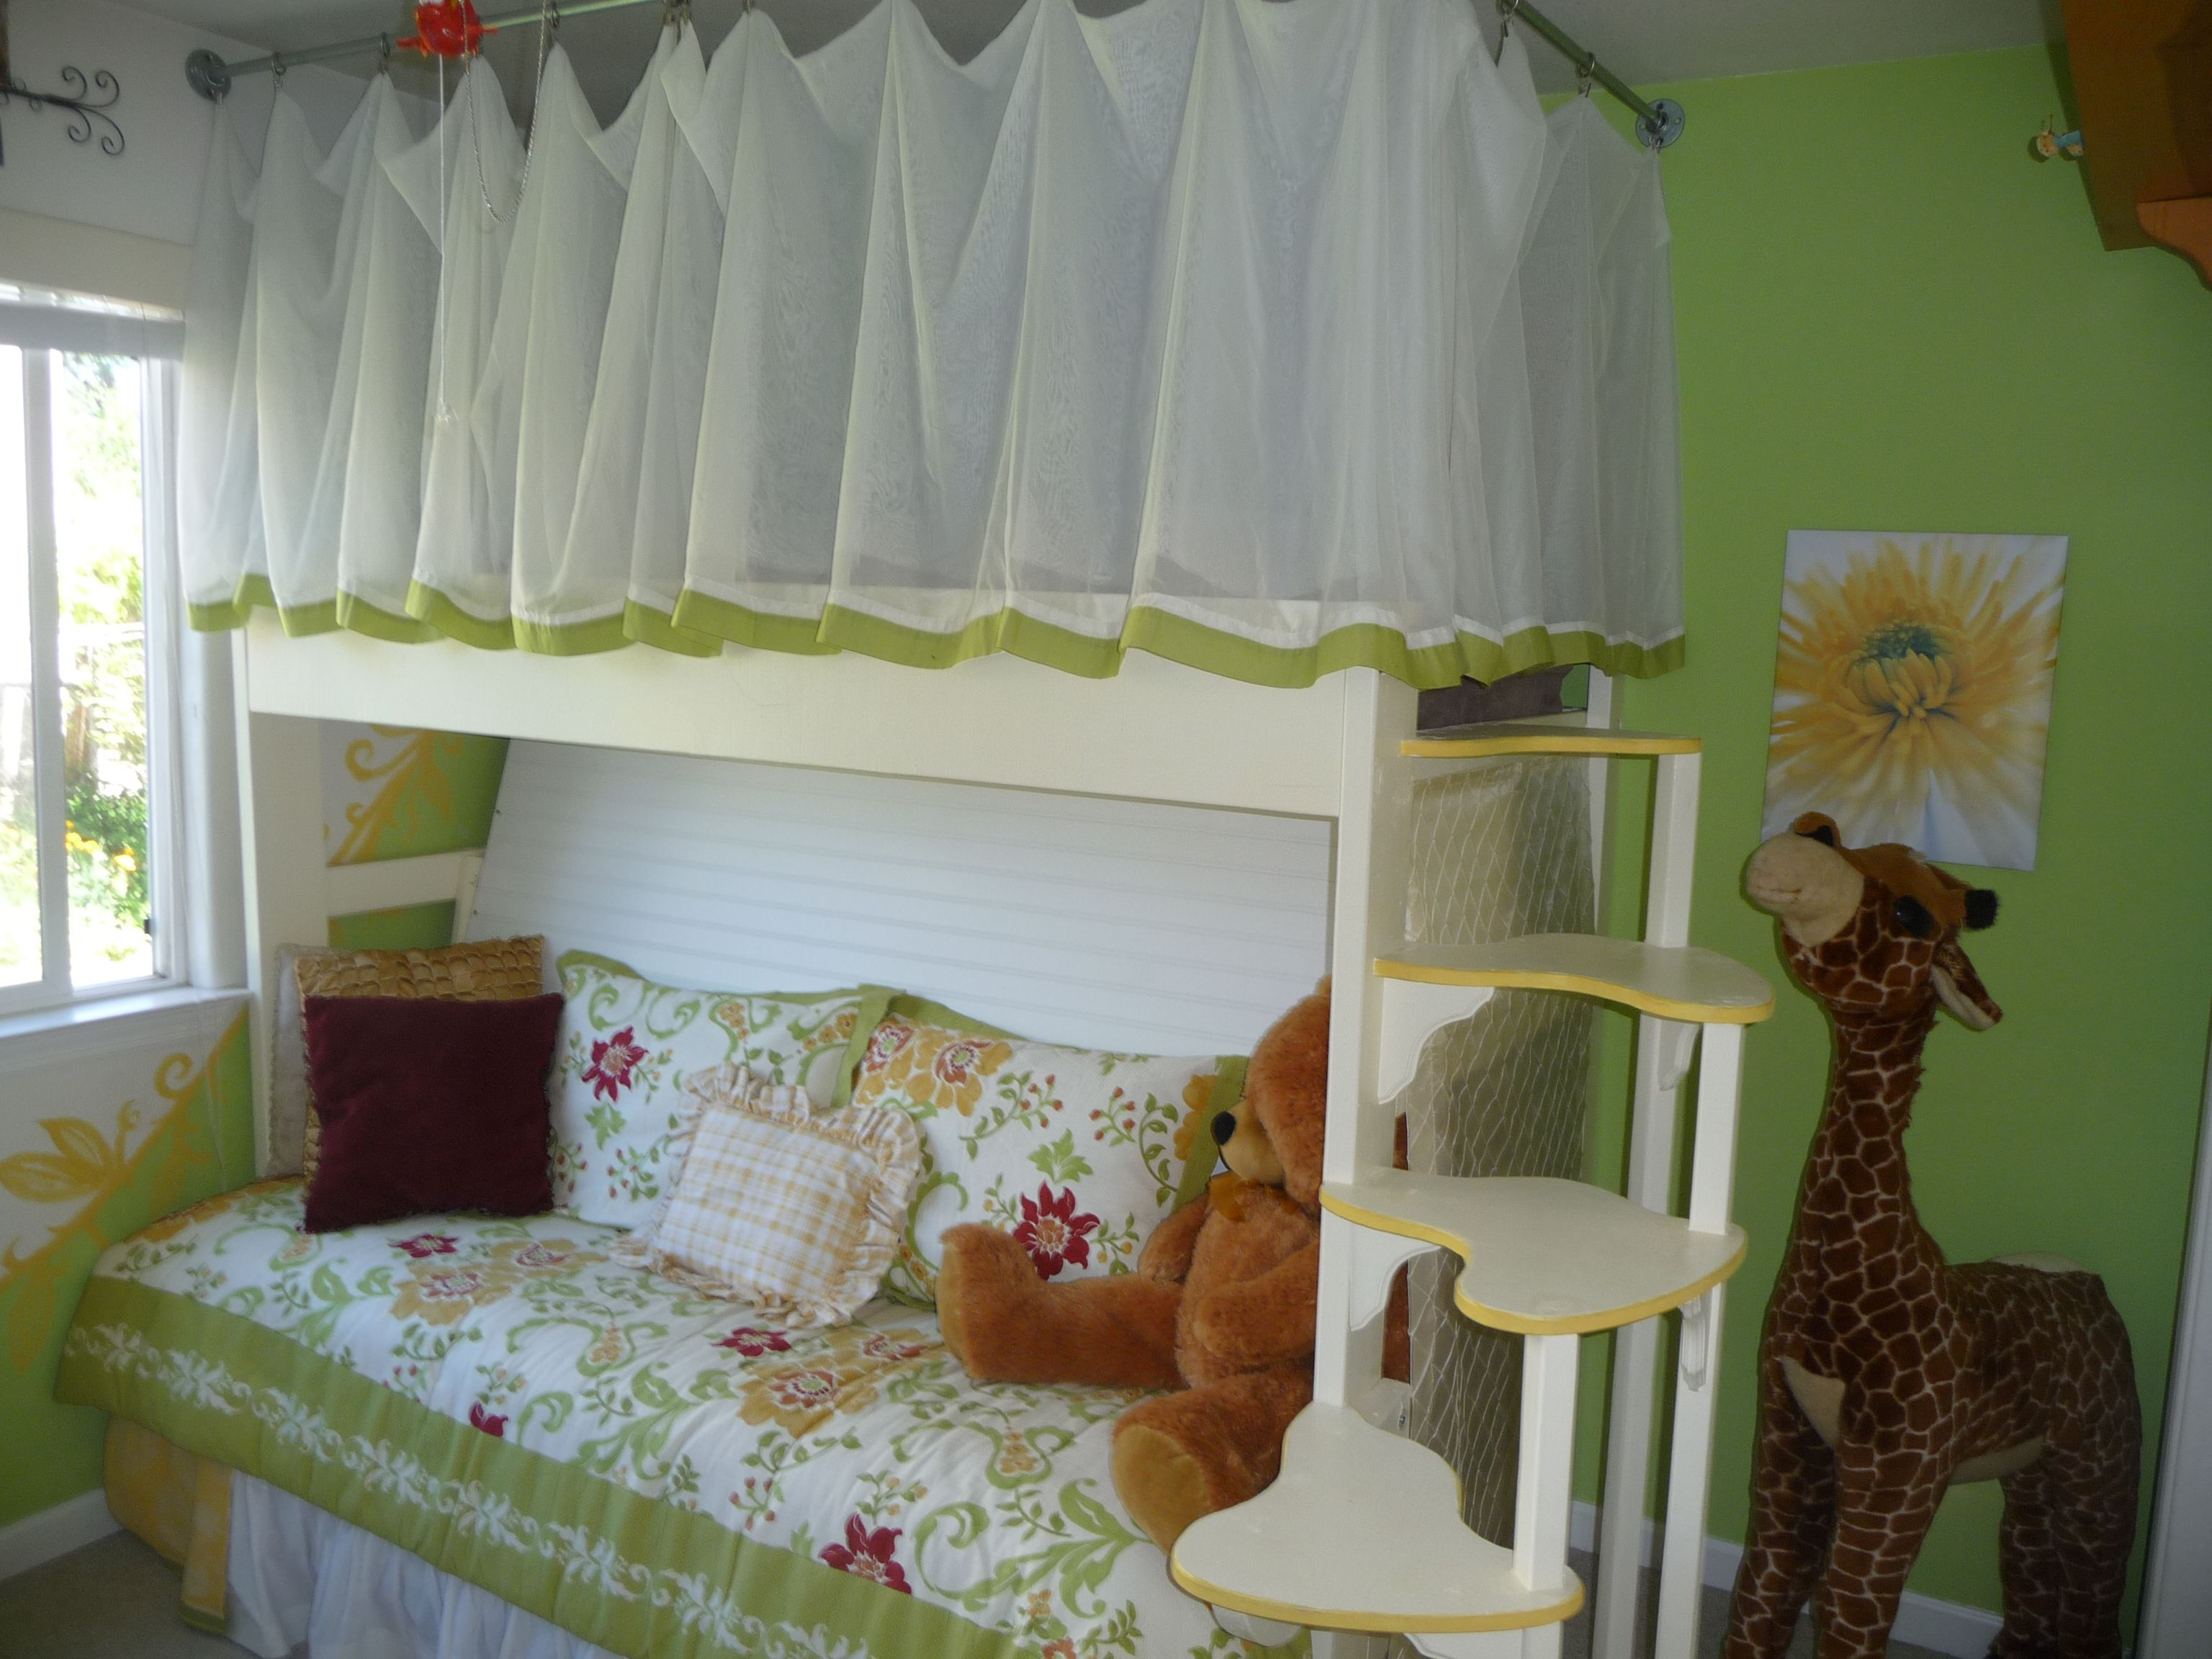 Loft bedroom in garage  Curtained Loft Bed and Couch Designed by my husband and son for my